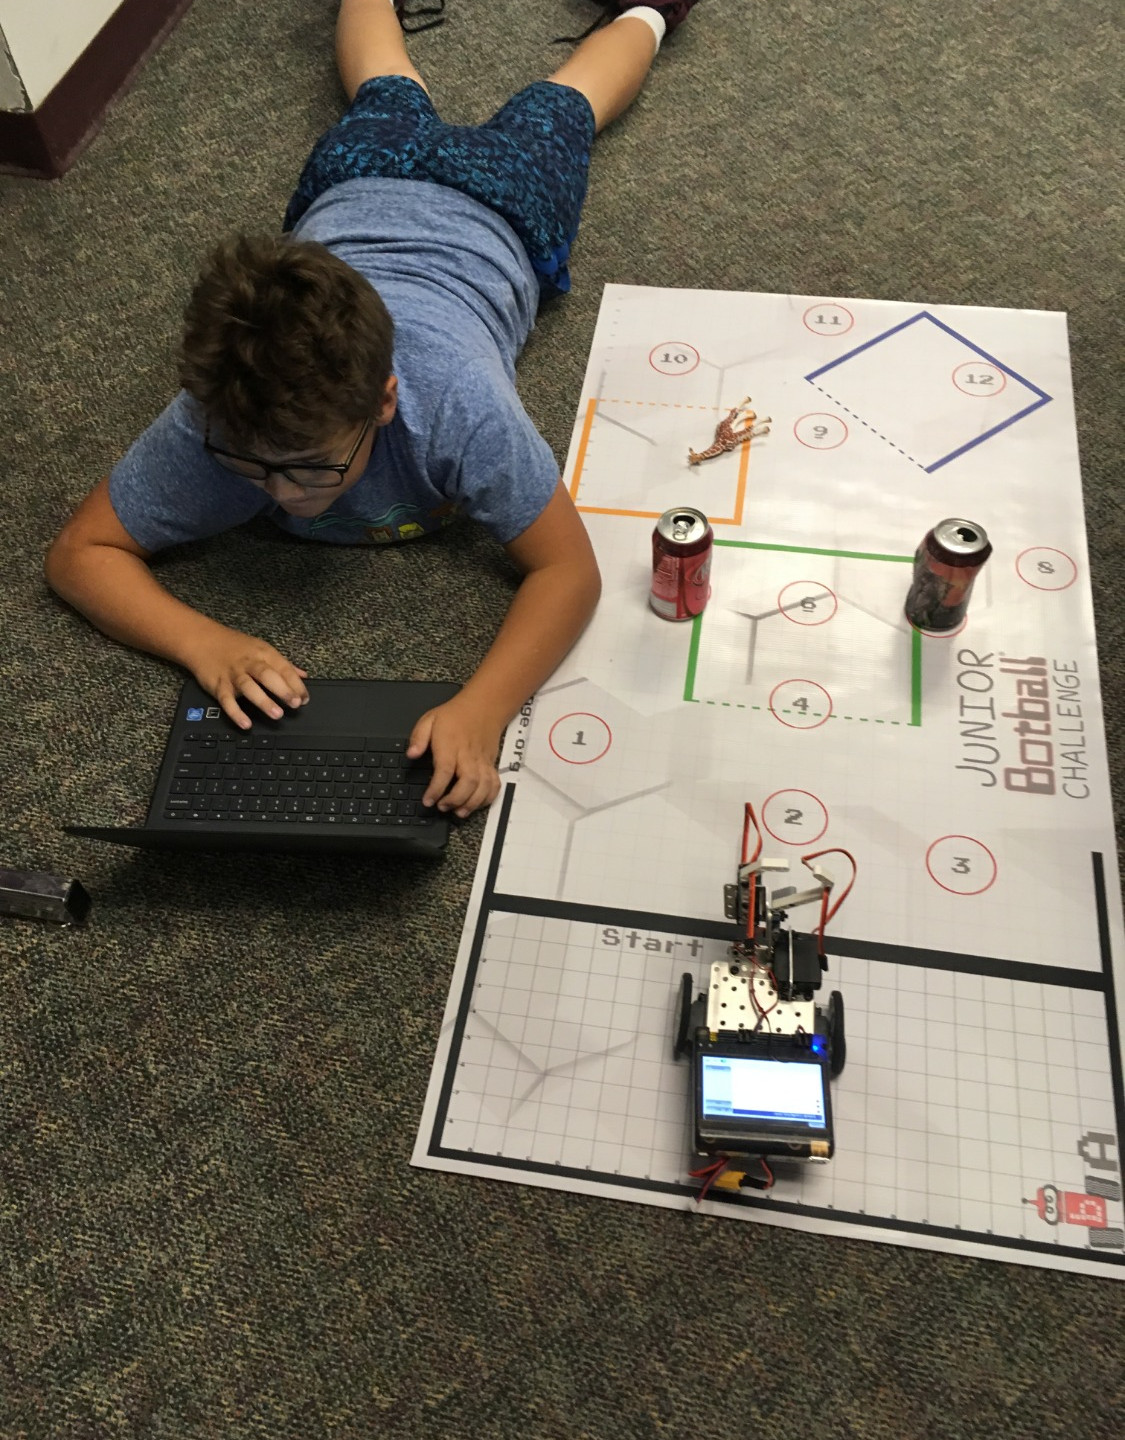 BMS Student challenged in class to get robot to hit a can or to manouver around them.